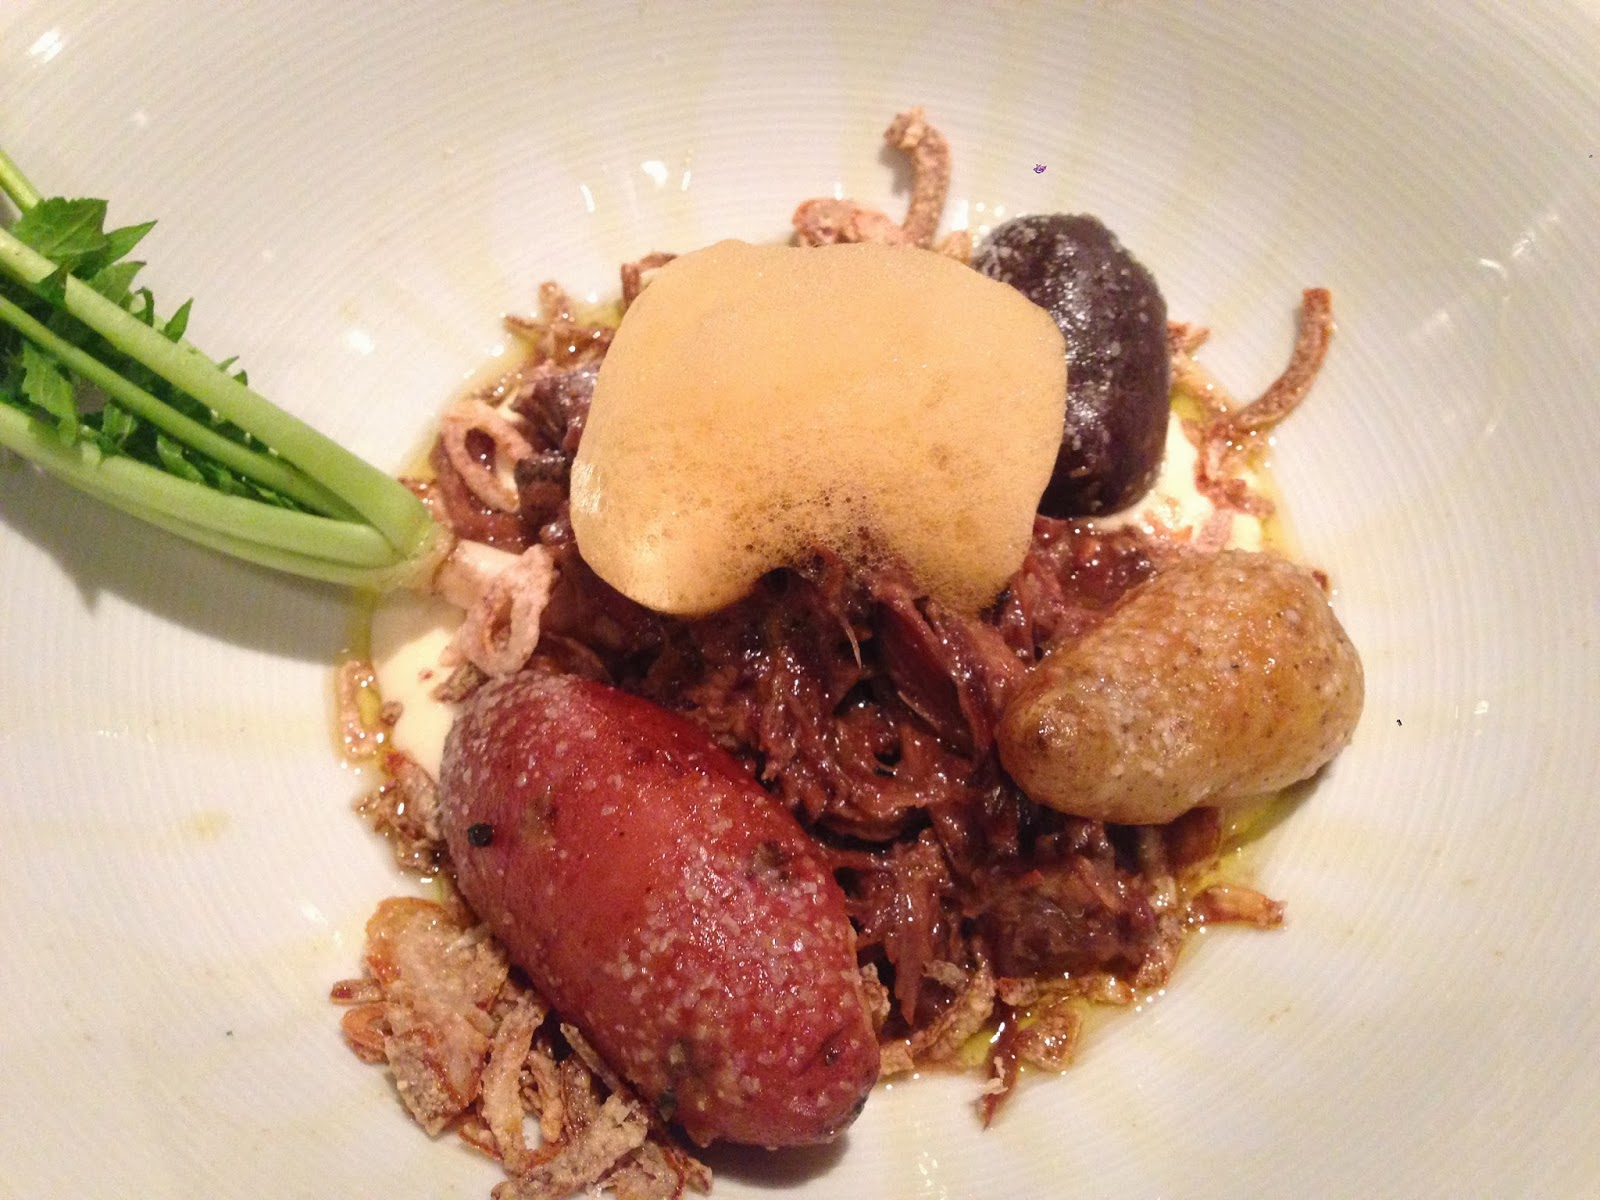 Lamb Neck Bourguinon, Charred Celery Root Puree, Confit Fingerling Potatoes, Mushroom Oil, Carrot Foam